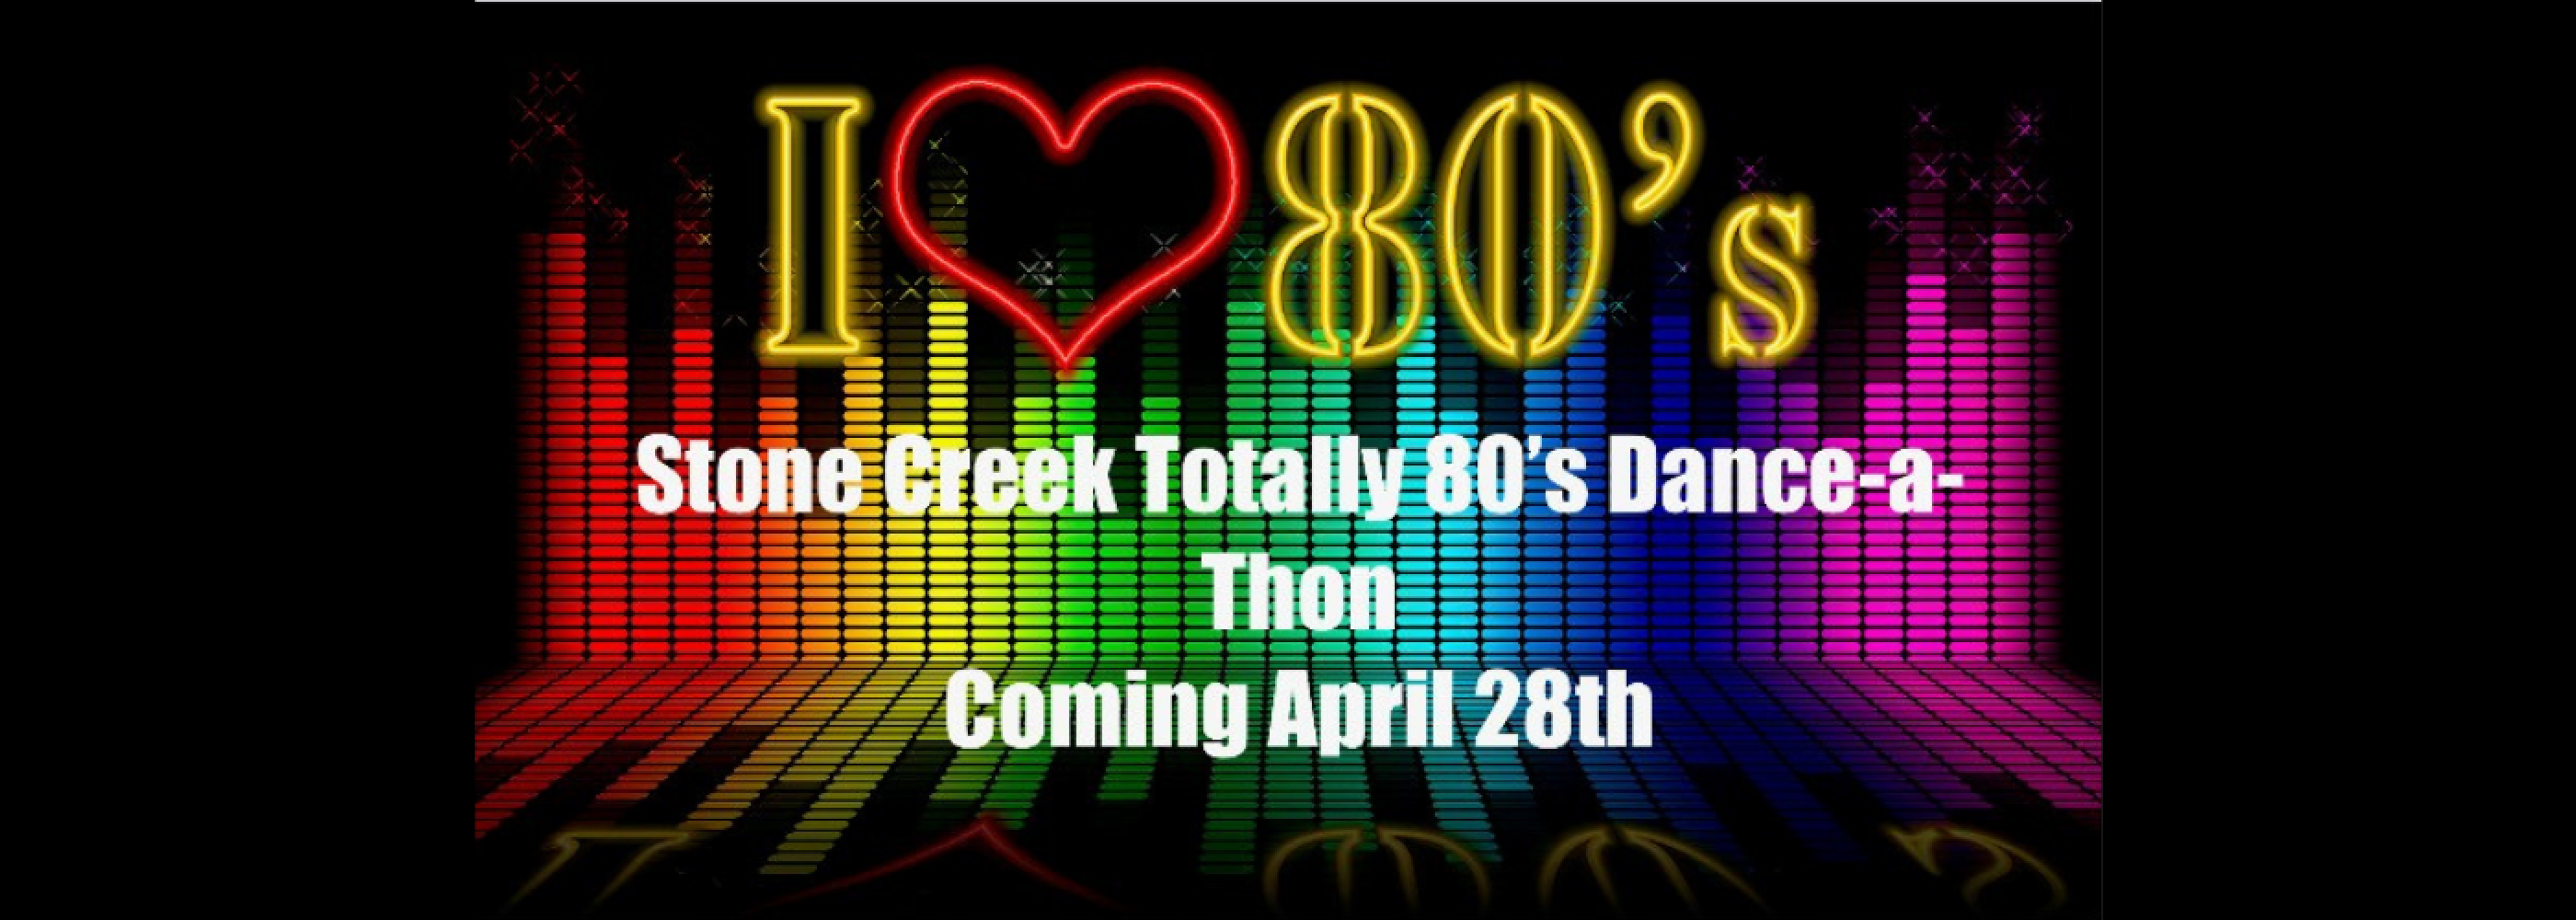 80's dance-a-thon coming april 28